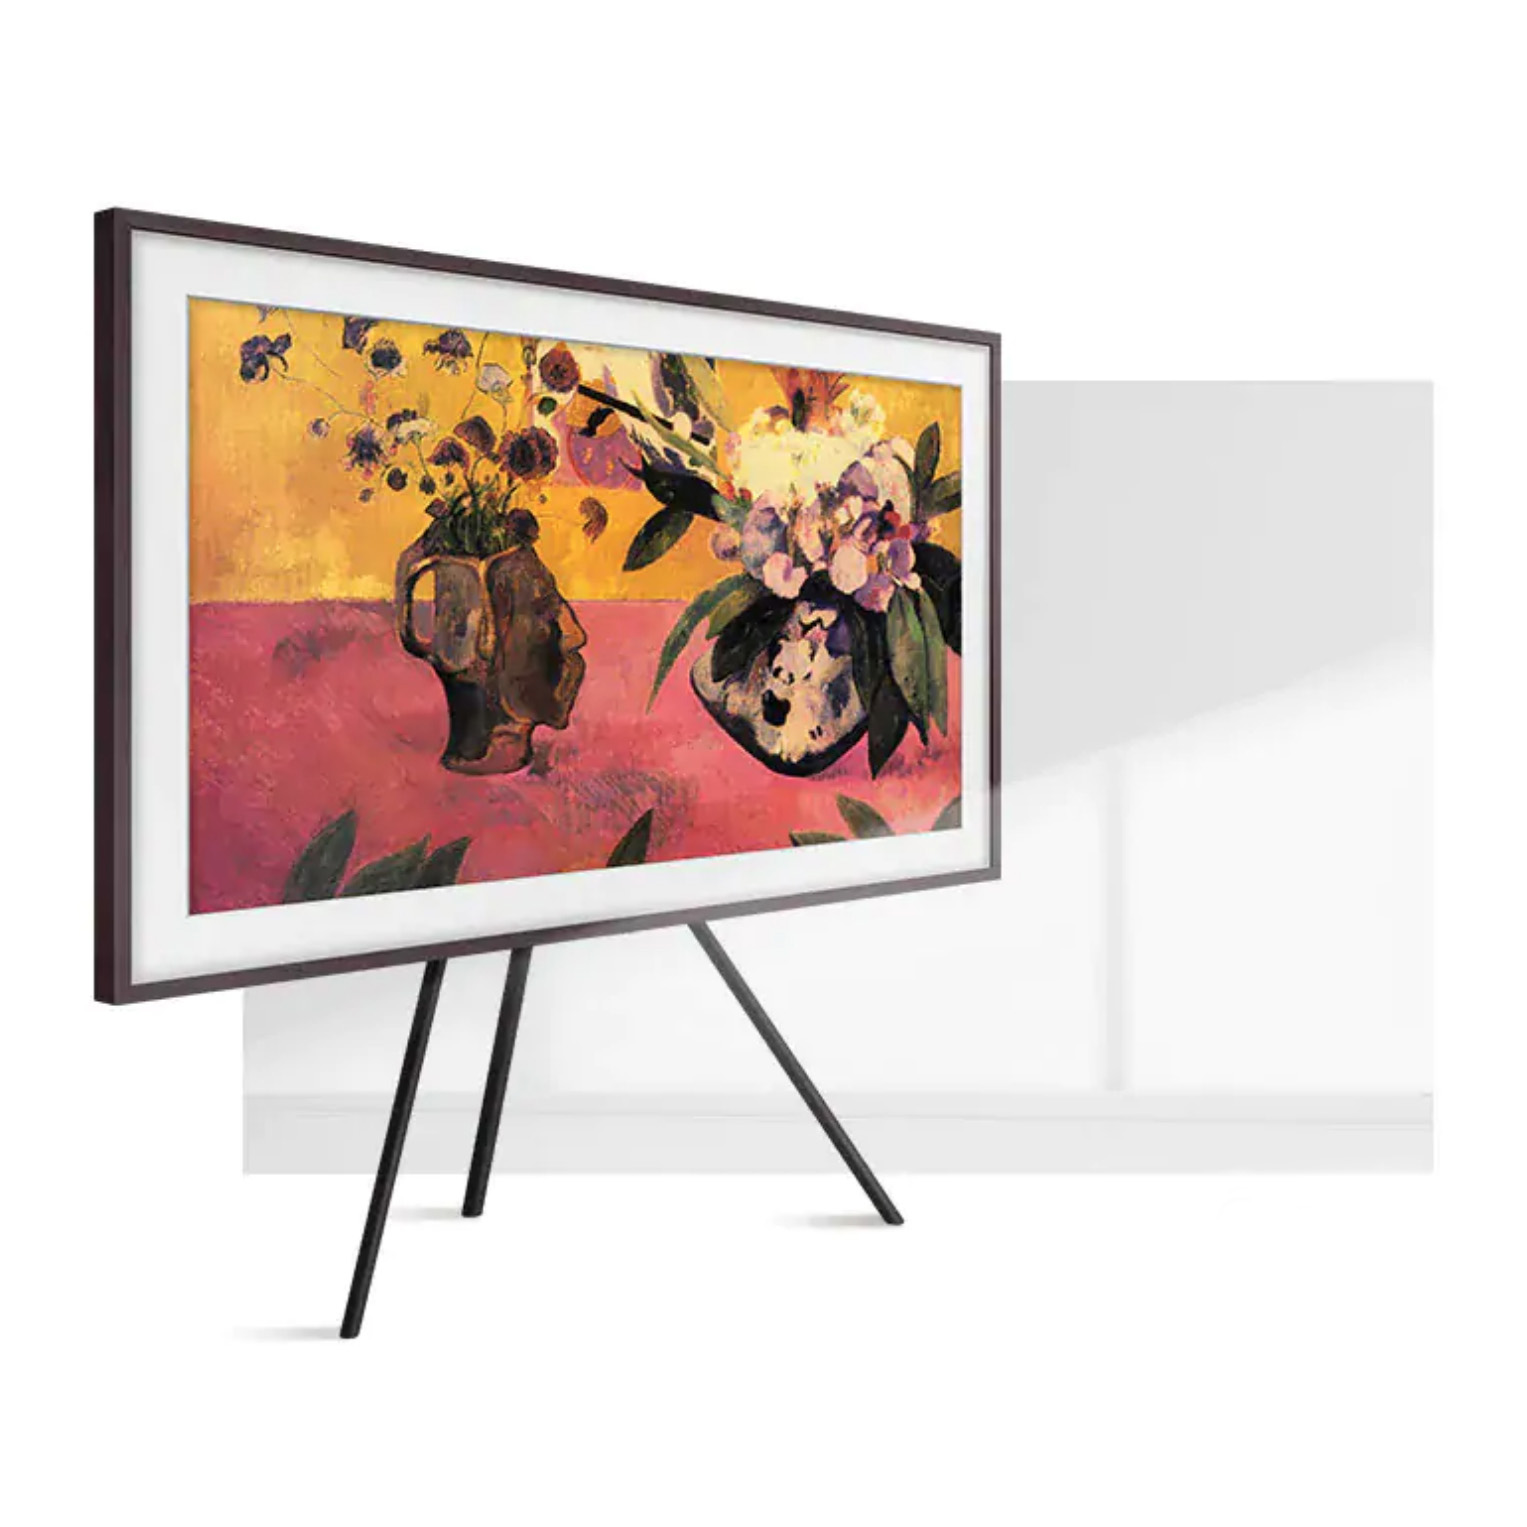 Samsung The Frame TV Performance Upgrade: Experts' Picks